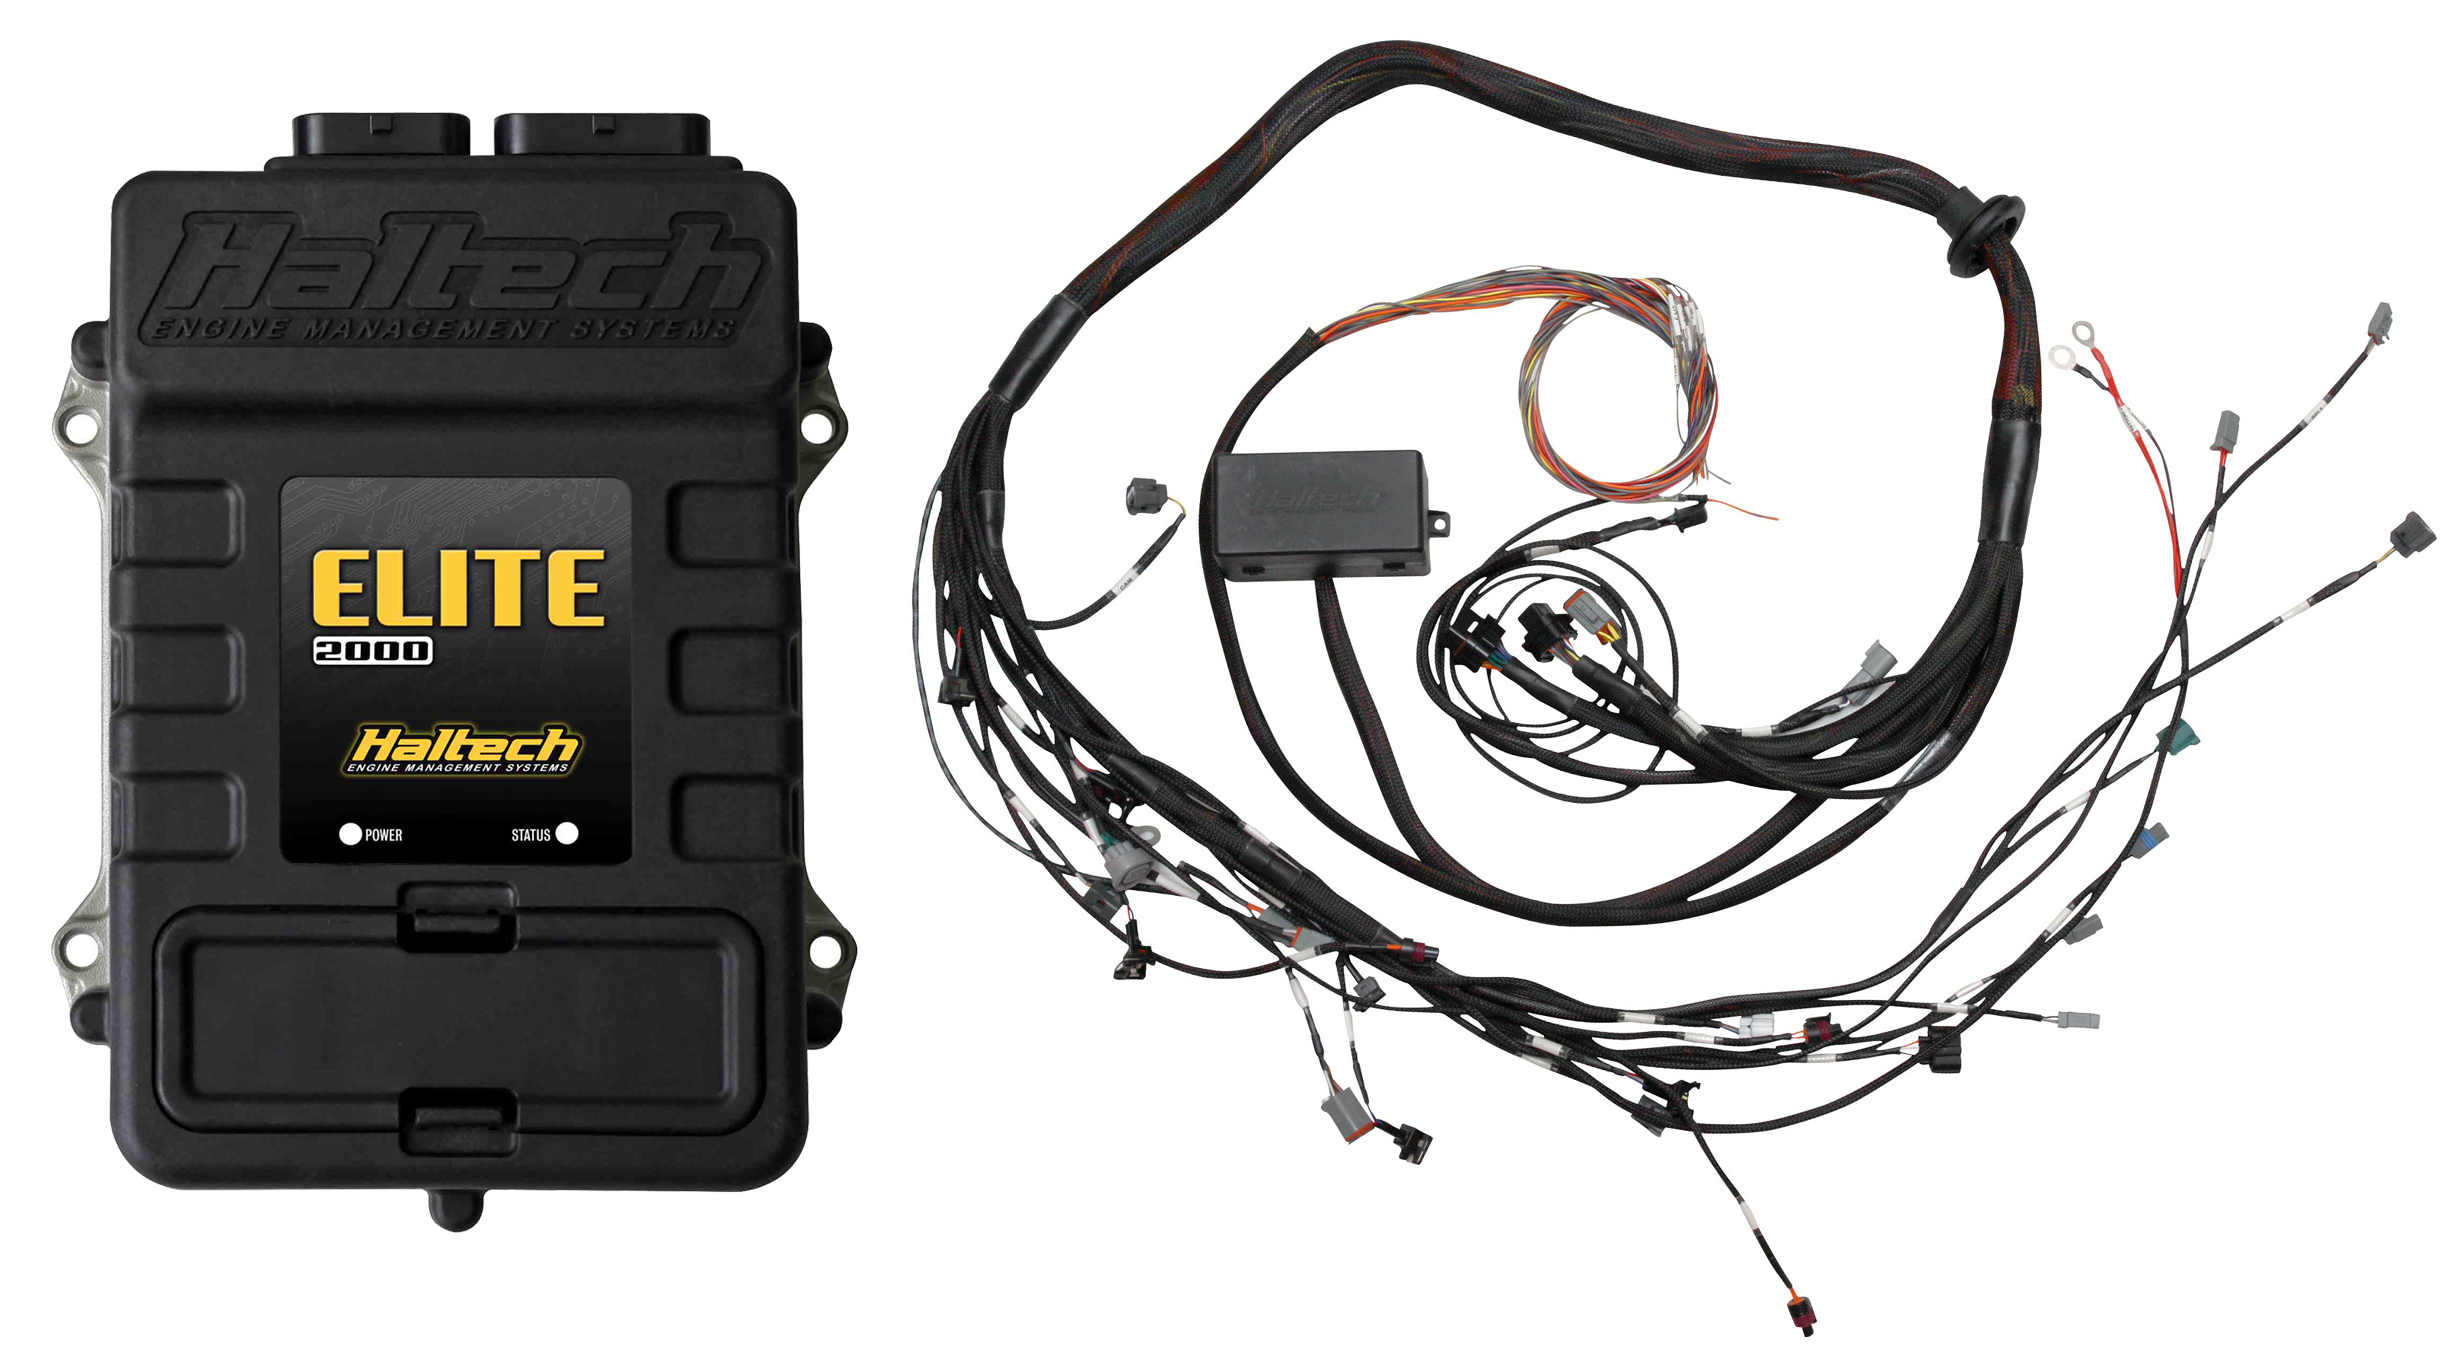 Haltech Engine Management Systems Blog Archive Terminated Cts V Fuel Pump Wire Harness Suits Both Vvt I And Non Engines With Bosch Ev1 Injector Connectors Includes Fuse Block